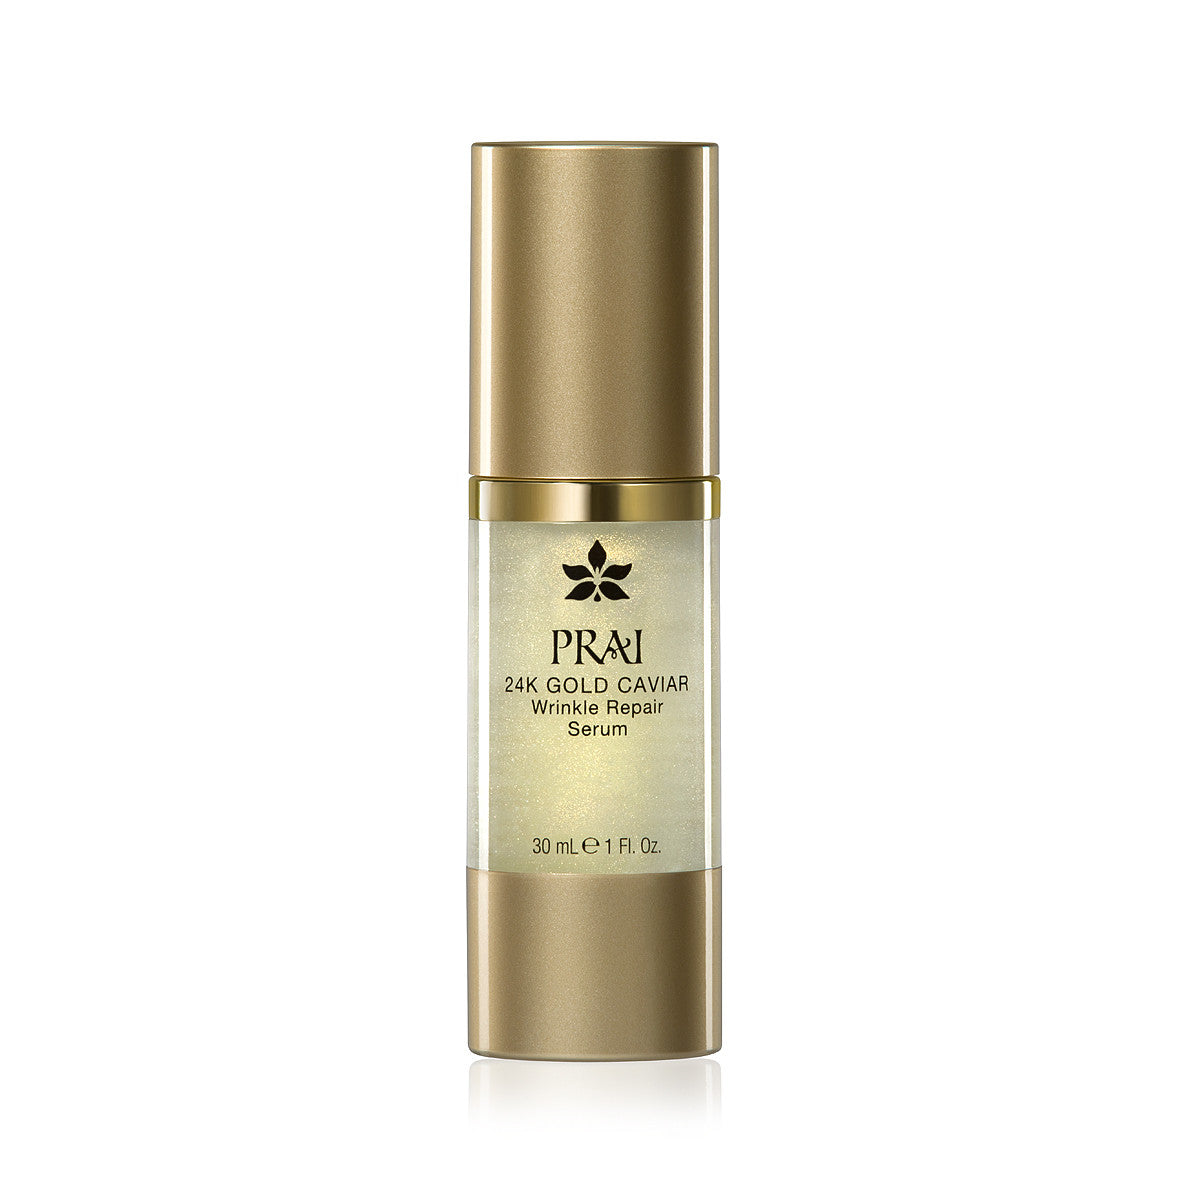 24K Gold Caviar Wrinkle Repair Serum